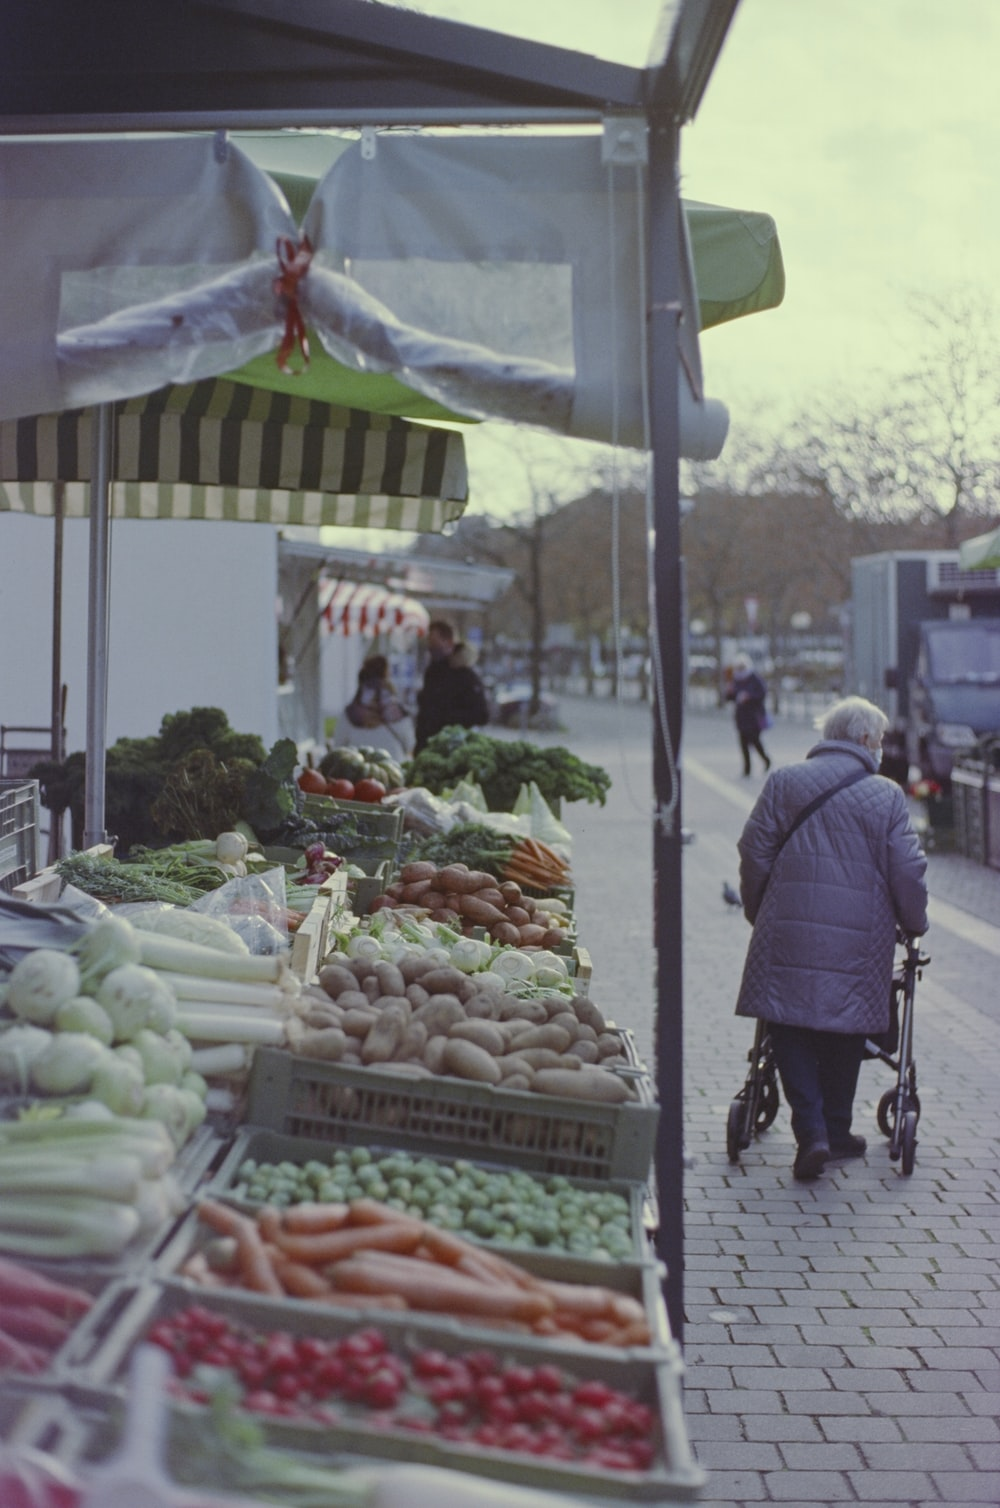 man in black jacket standing in front of vegetable stand